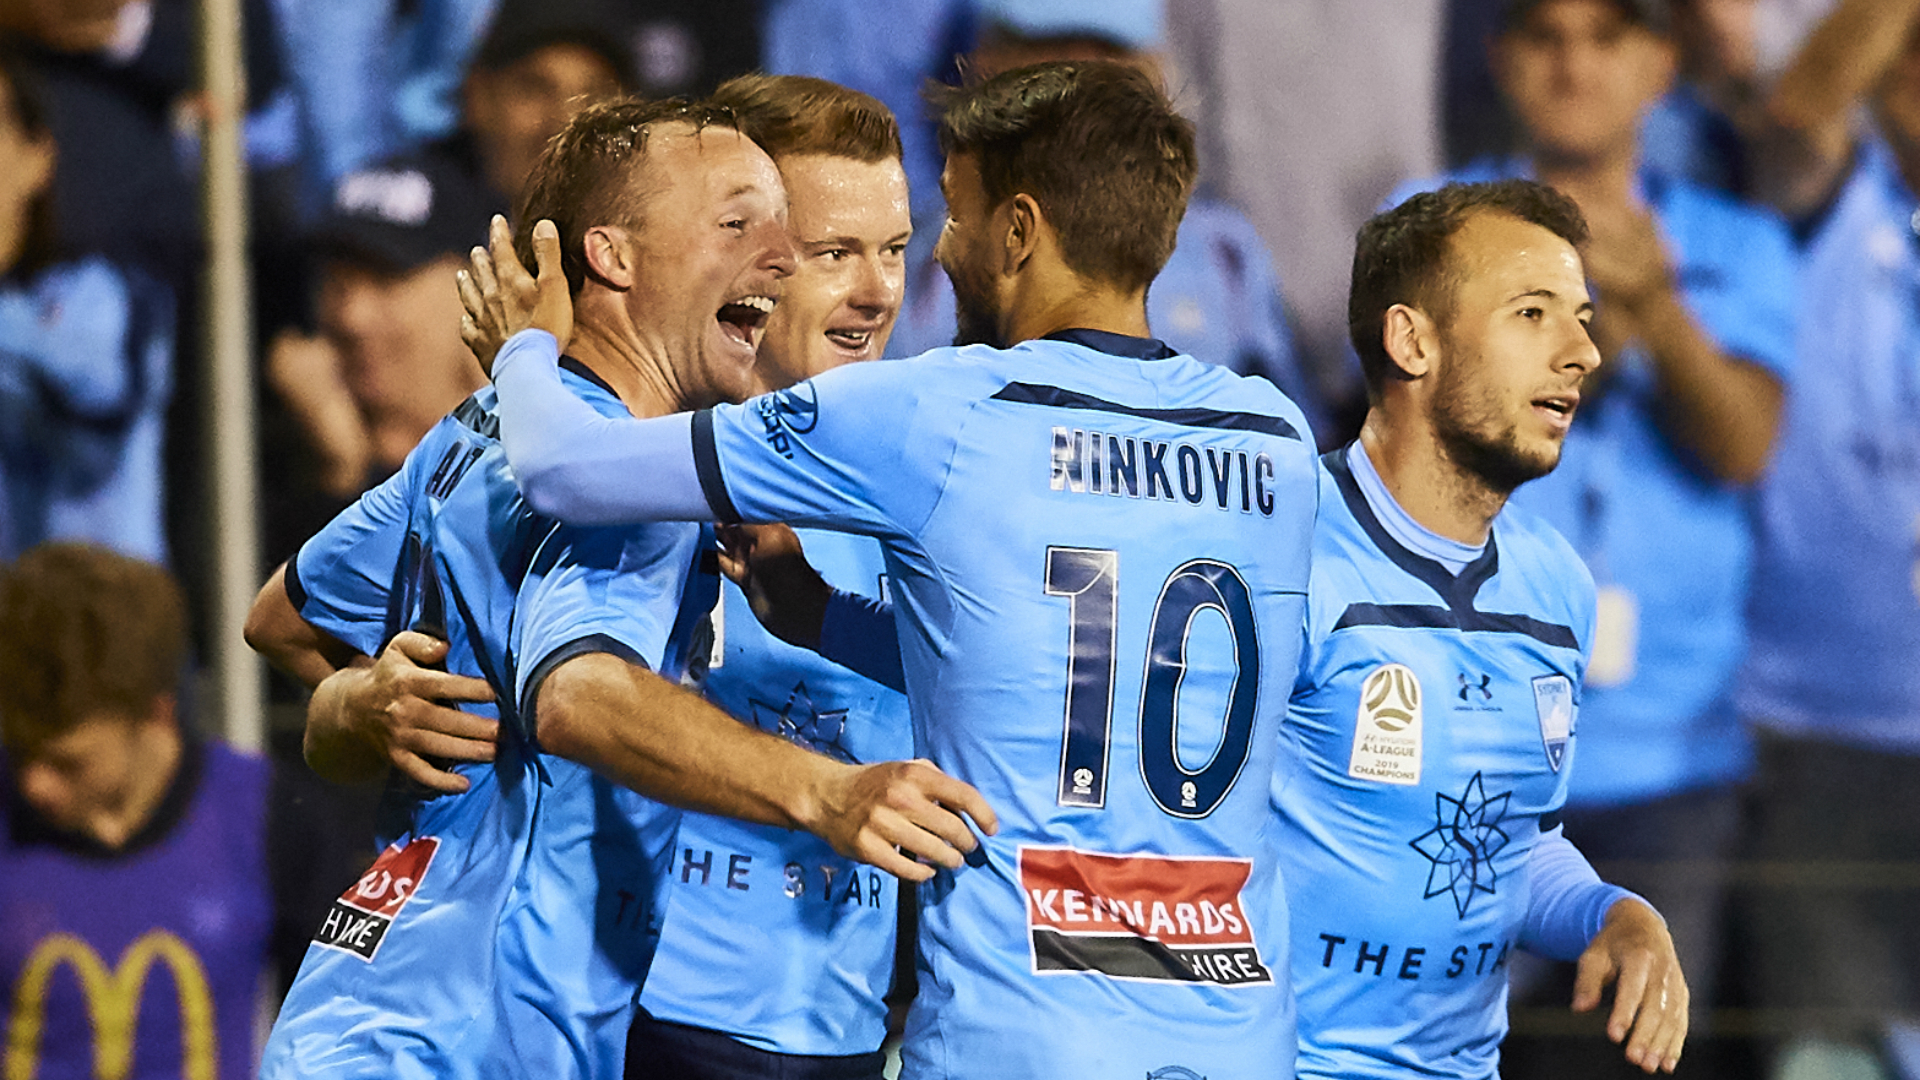 A-League Review: Grant goal sinks plucky Phoenix as Maclaren strikes twice for victorious City